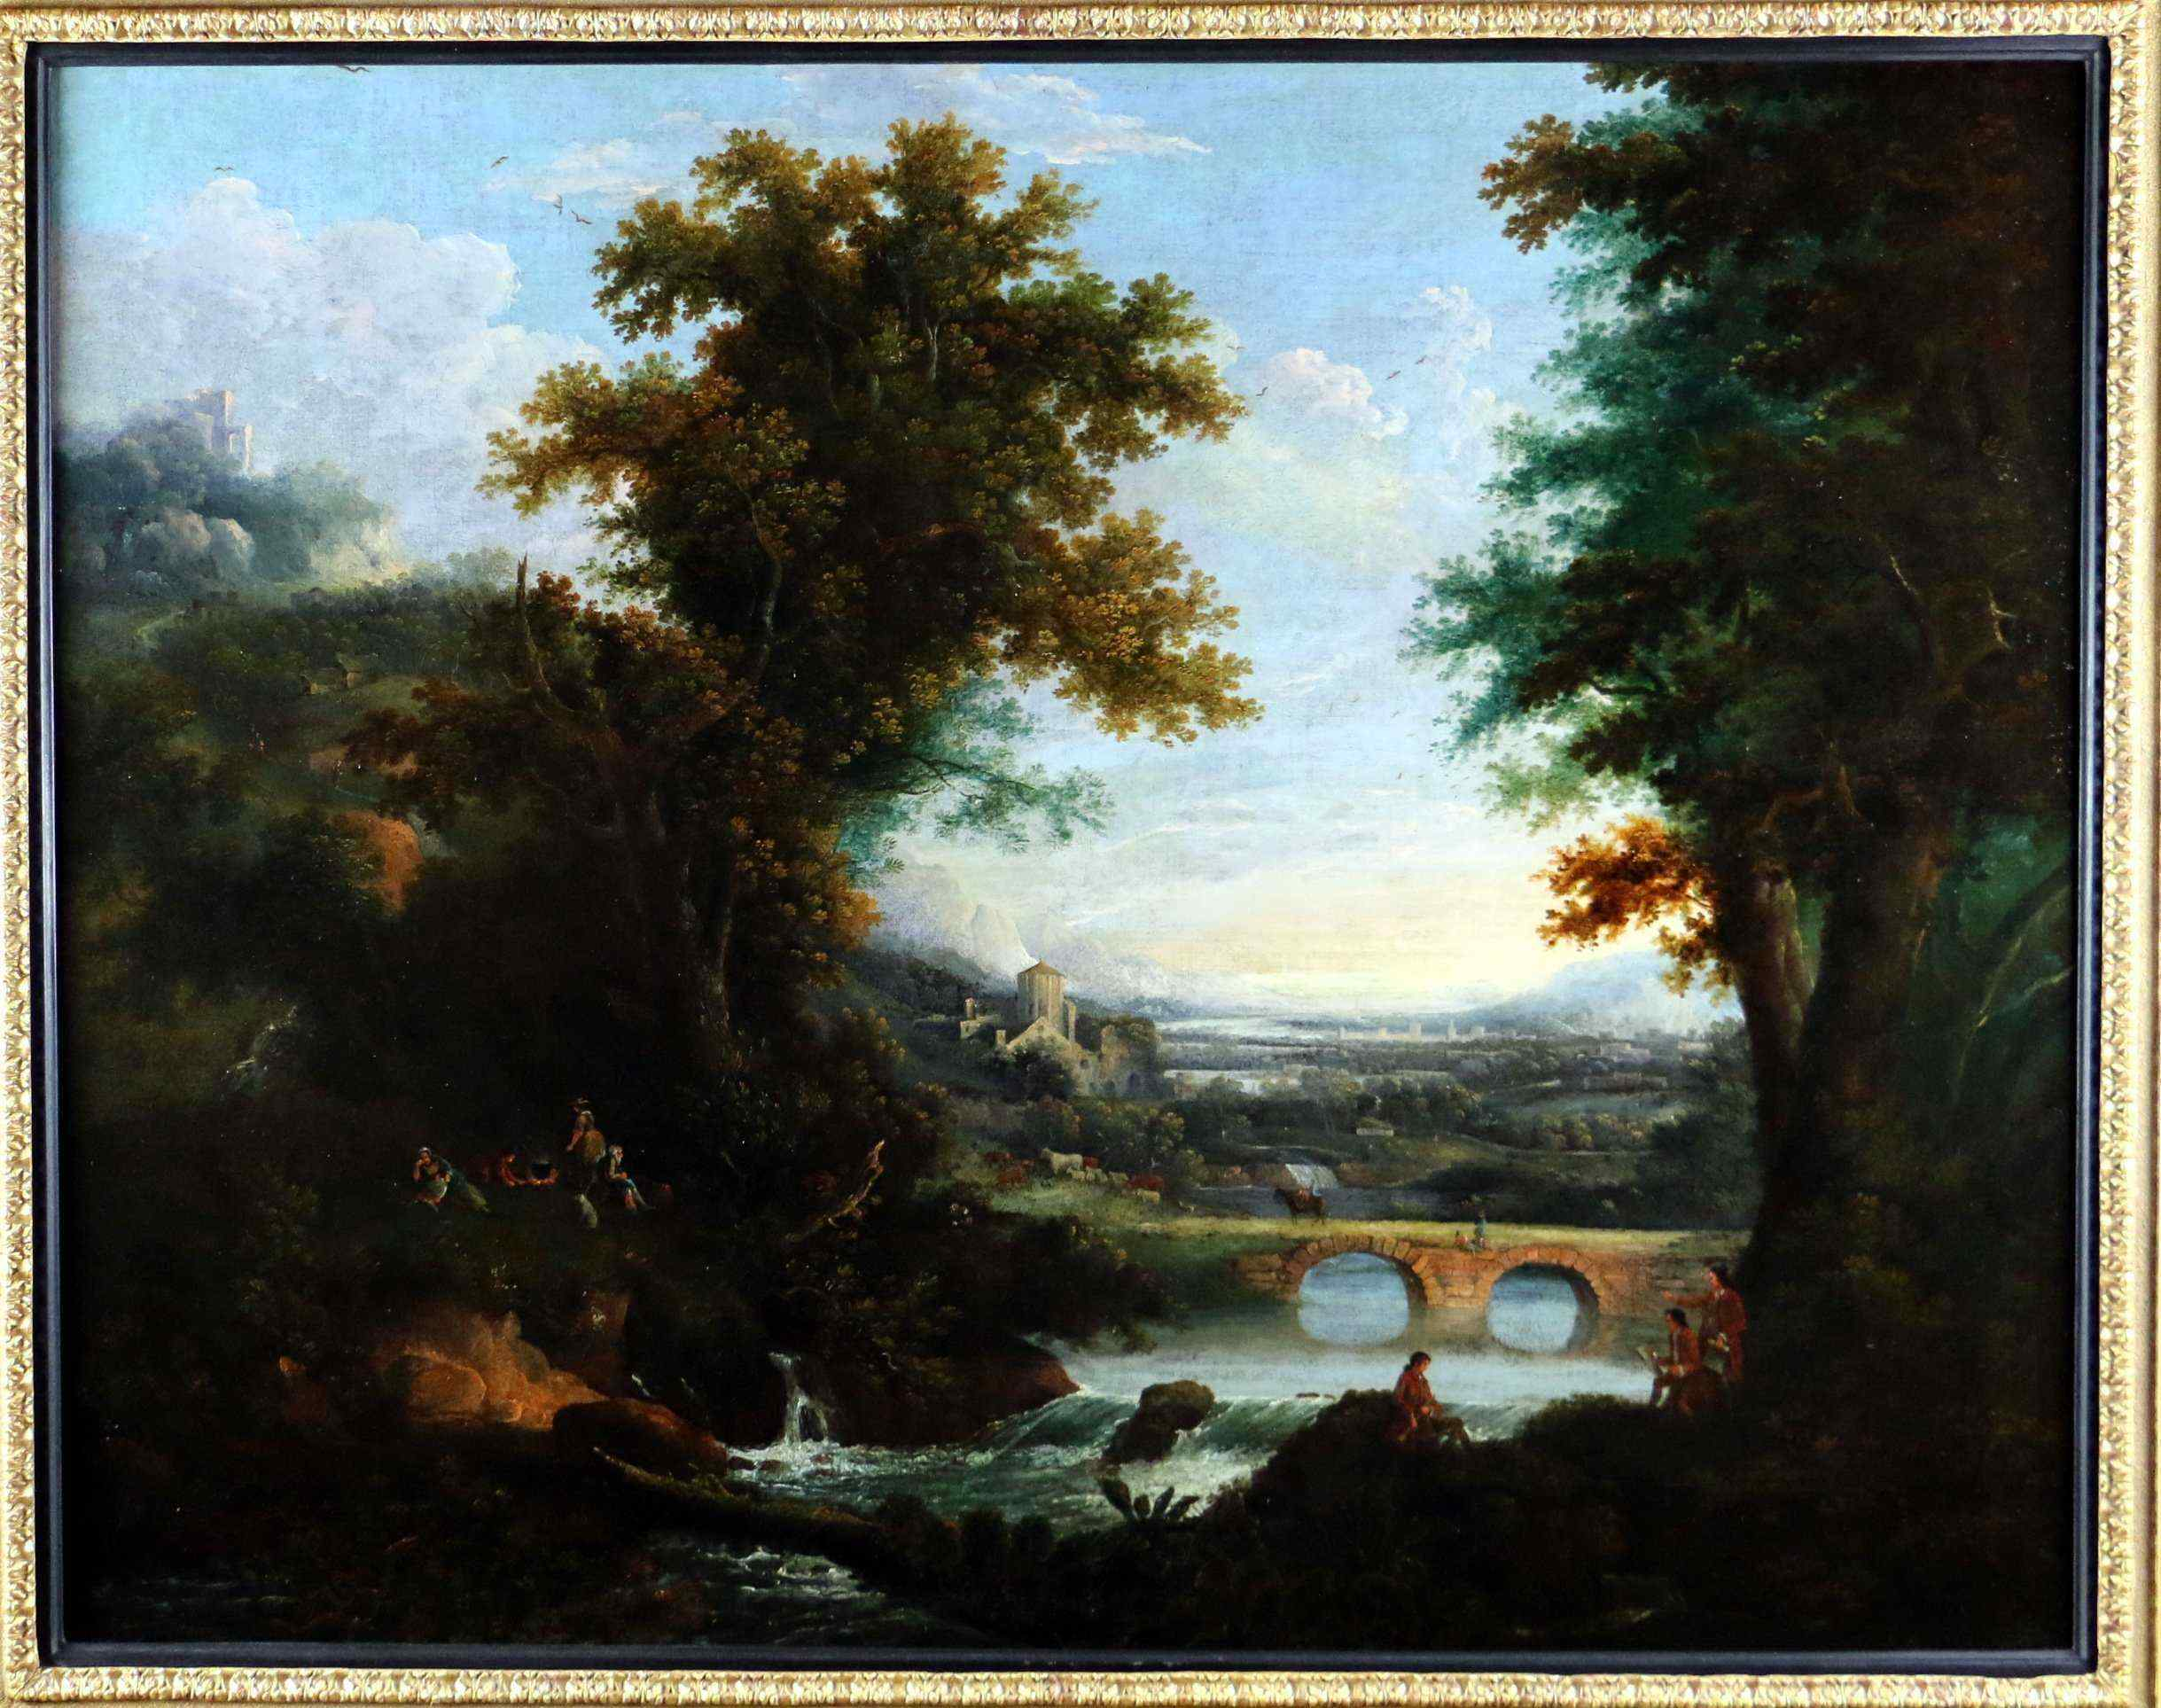 Of Chichester George Smith (1714-1776) Landscape